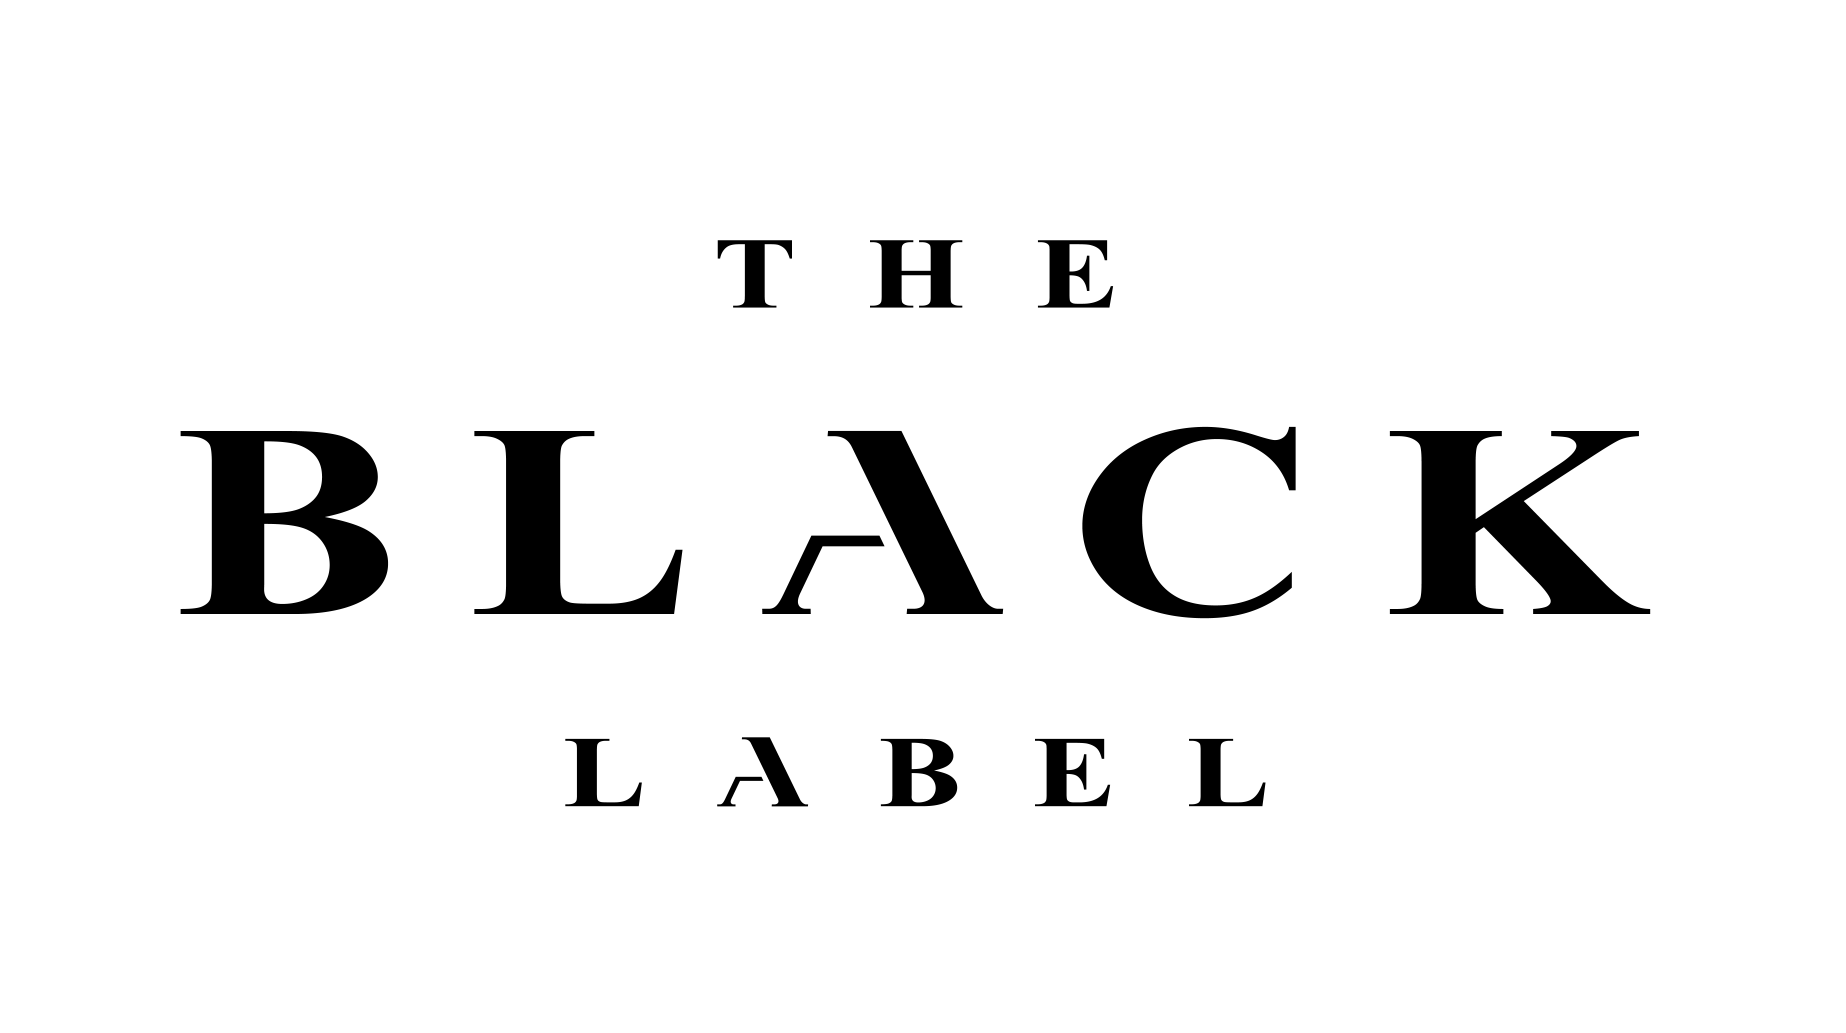 The Black Label